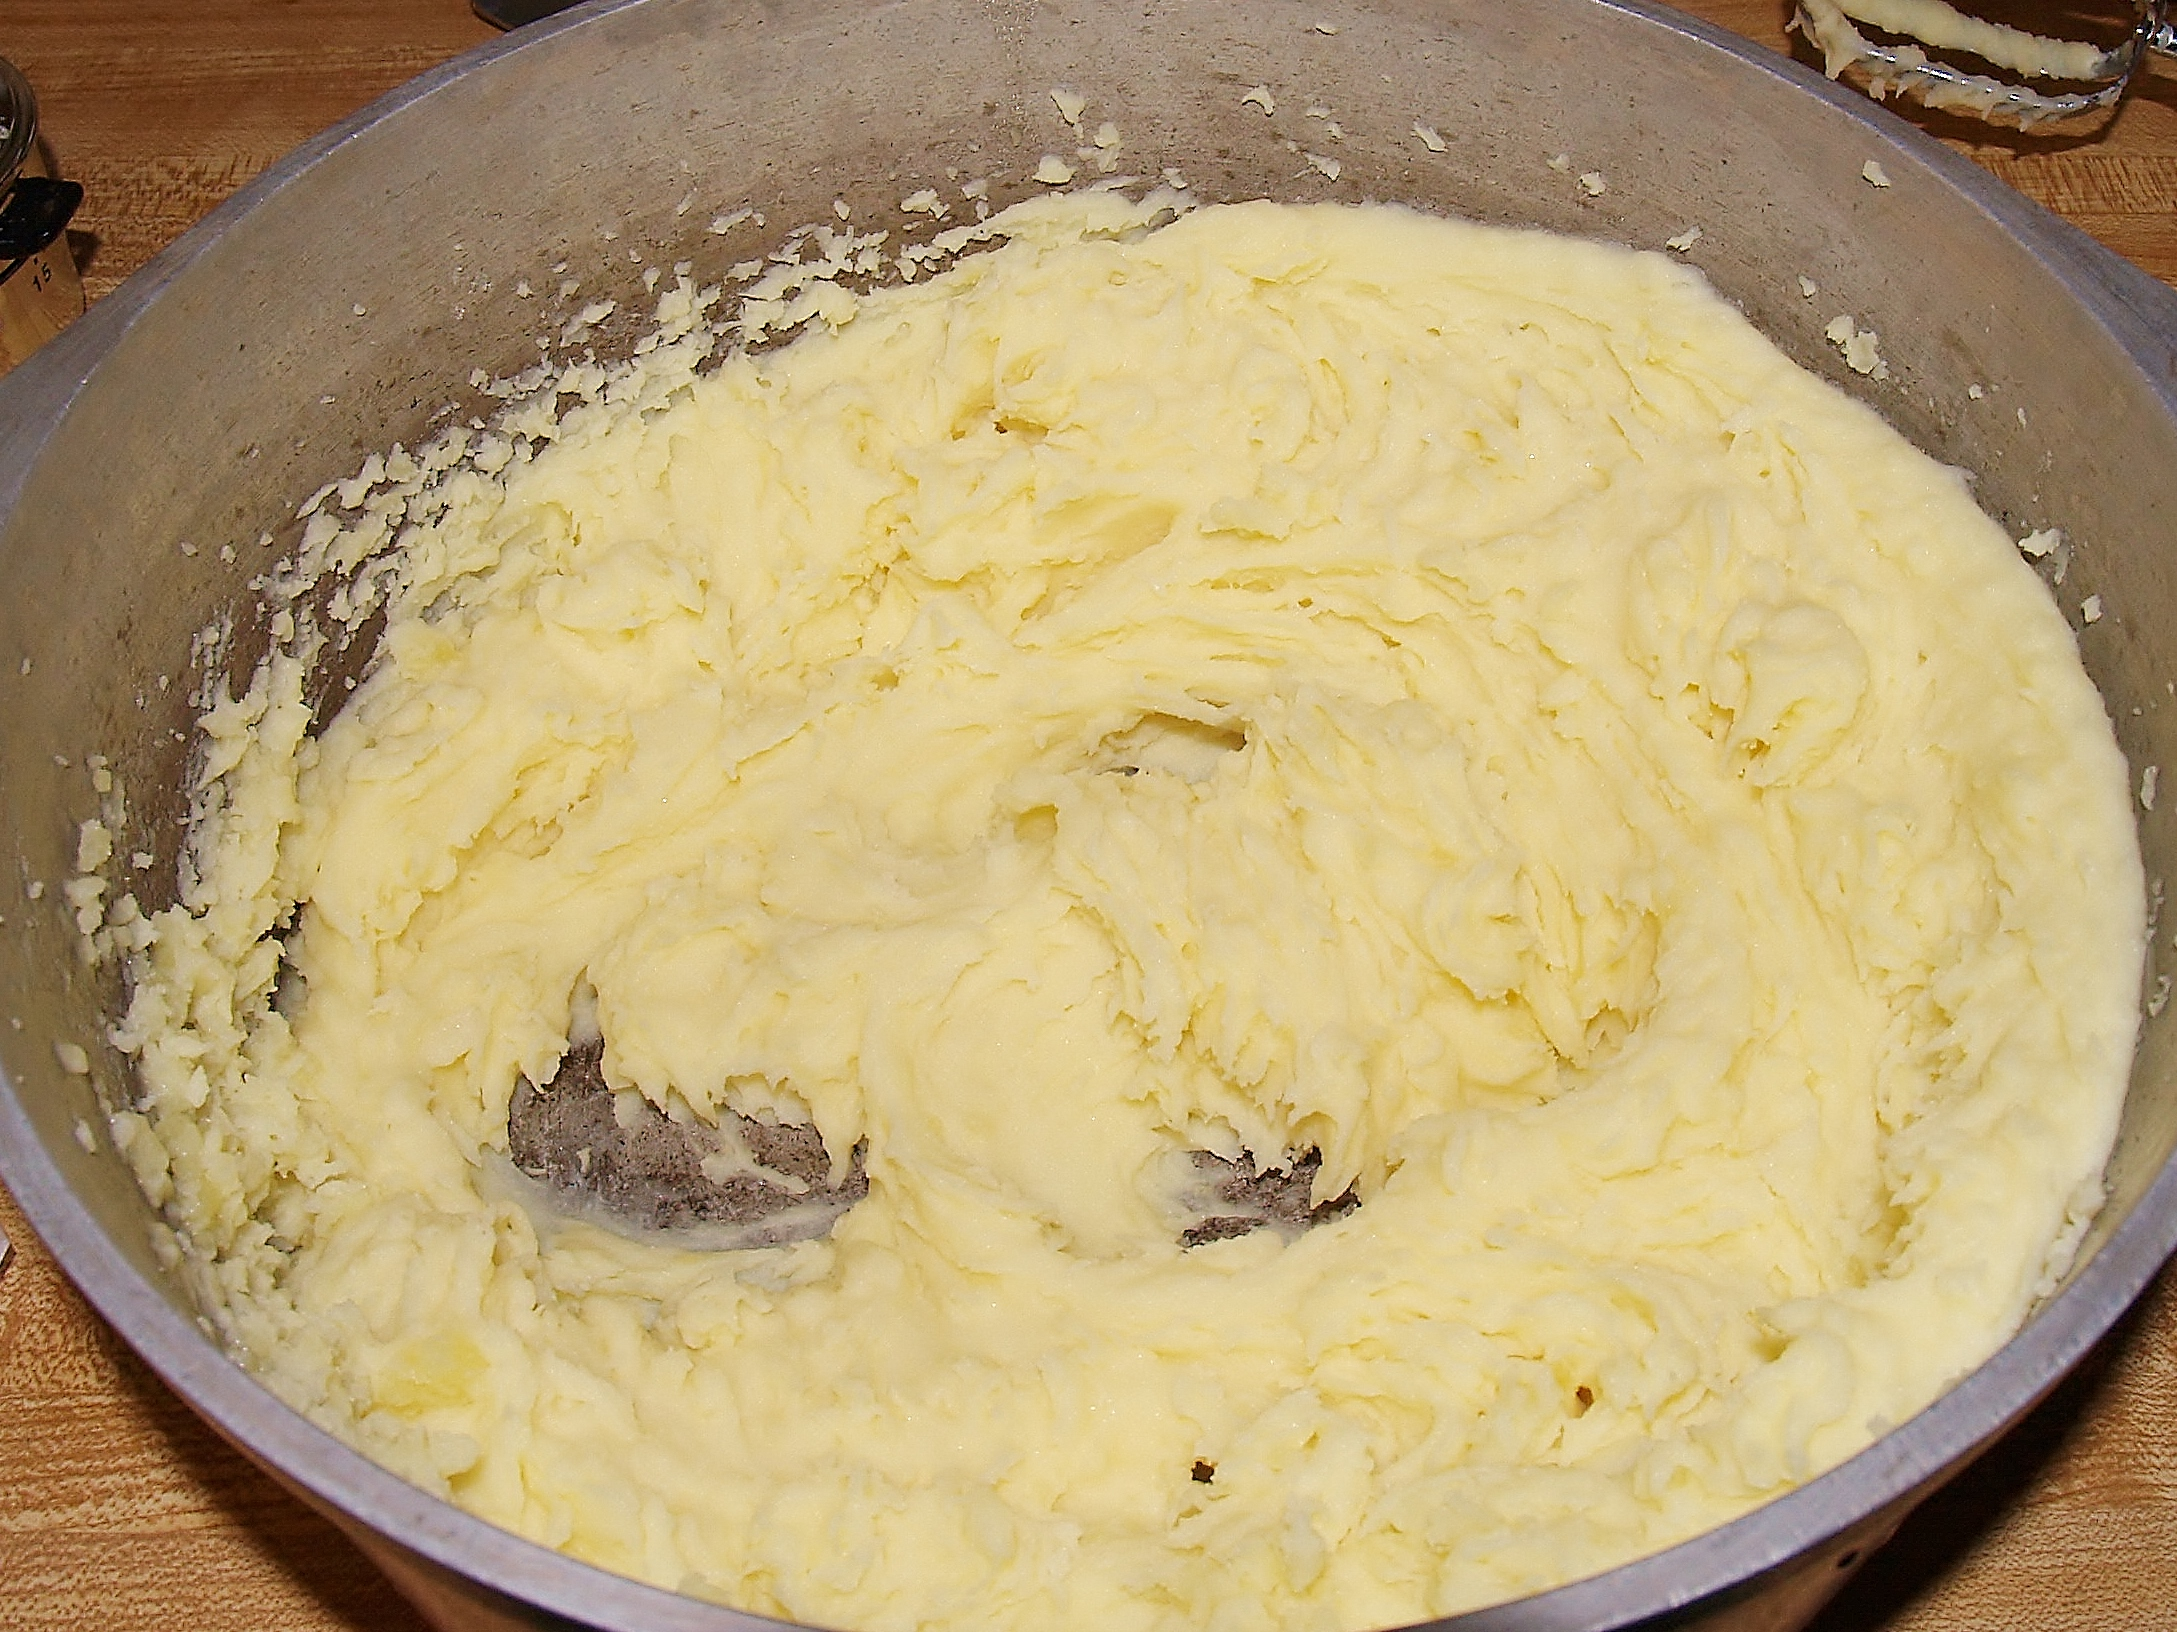 Aunt Irene's Old Fashioned Mustard Potato Salad